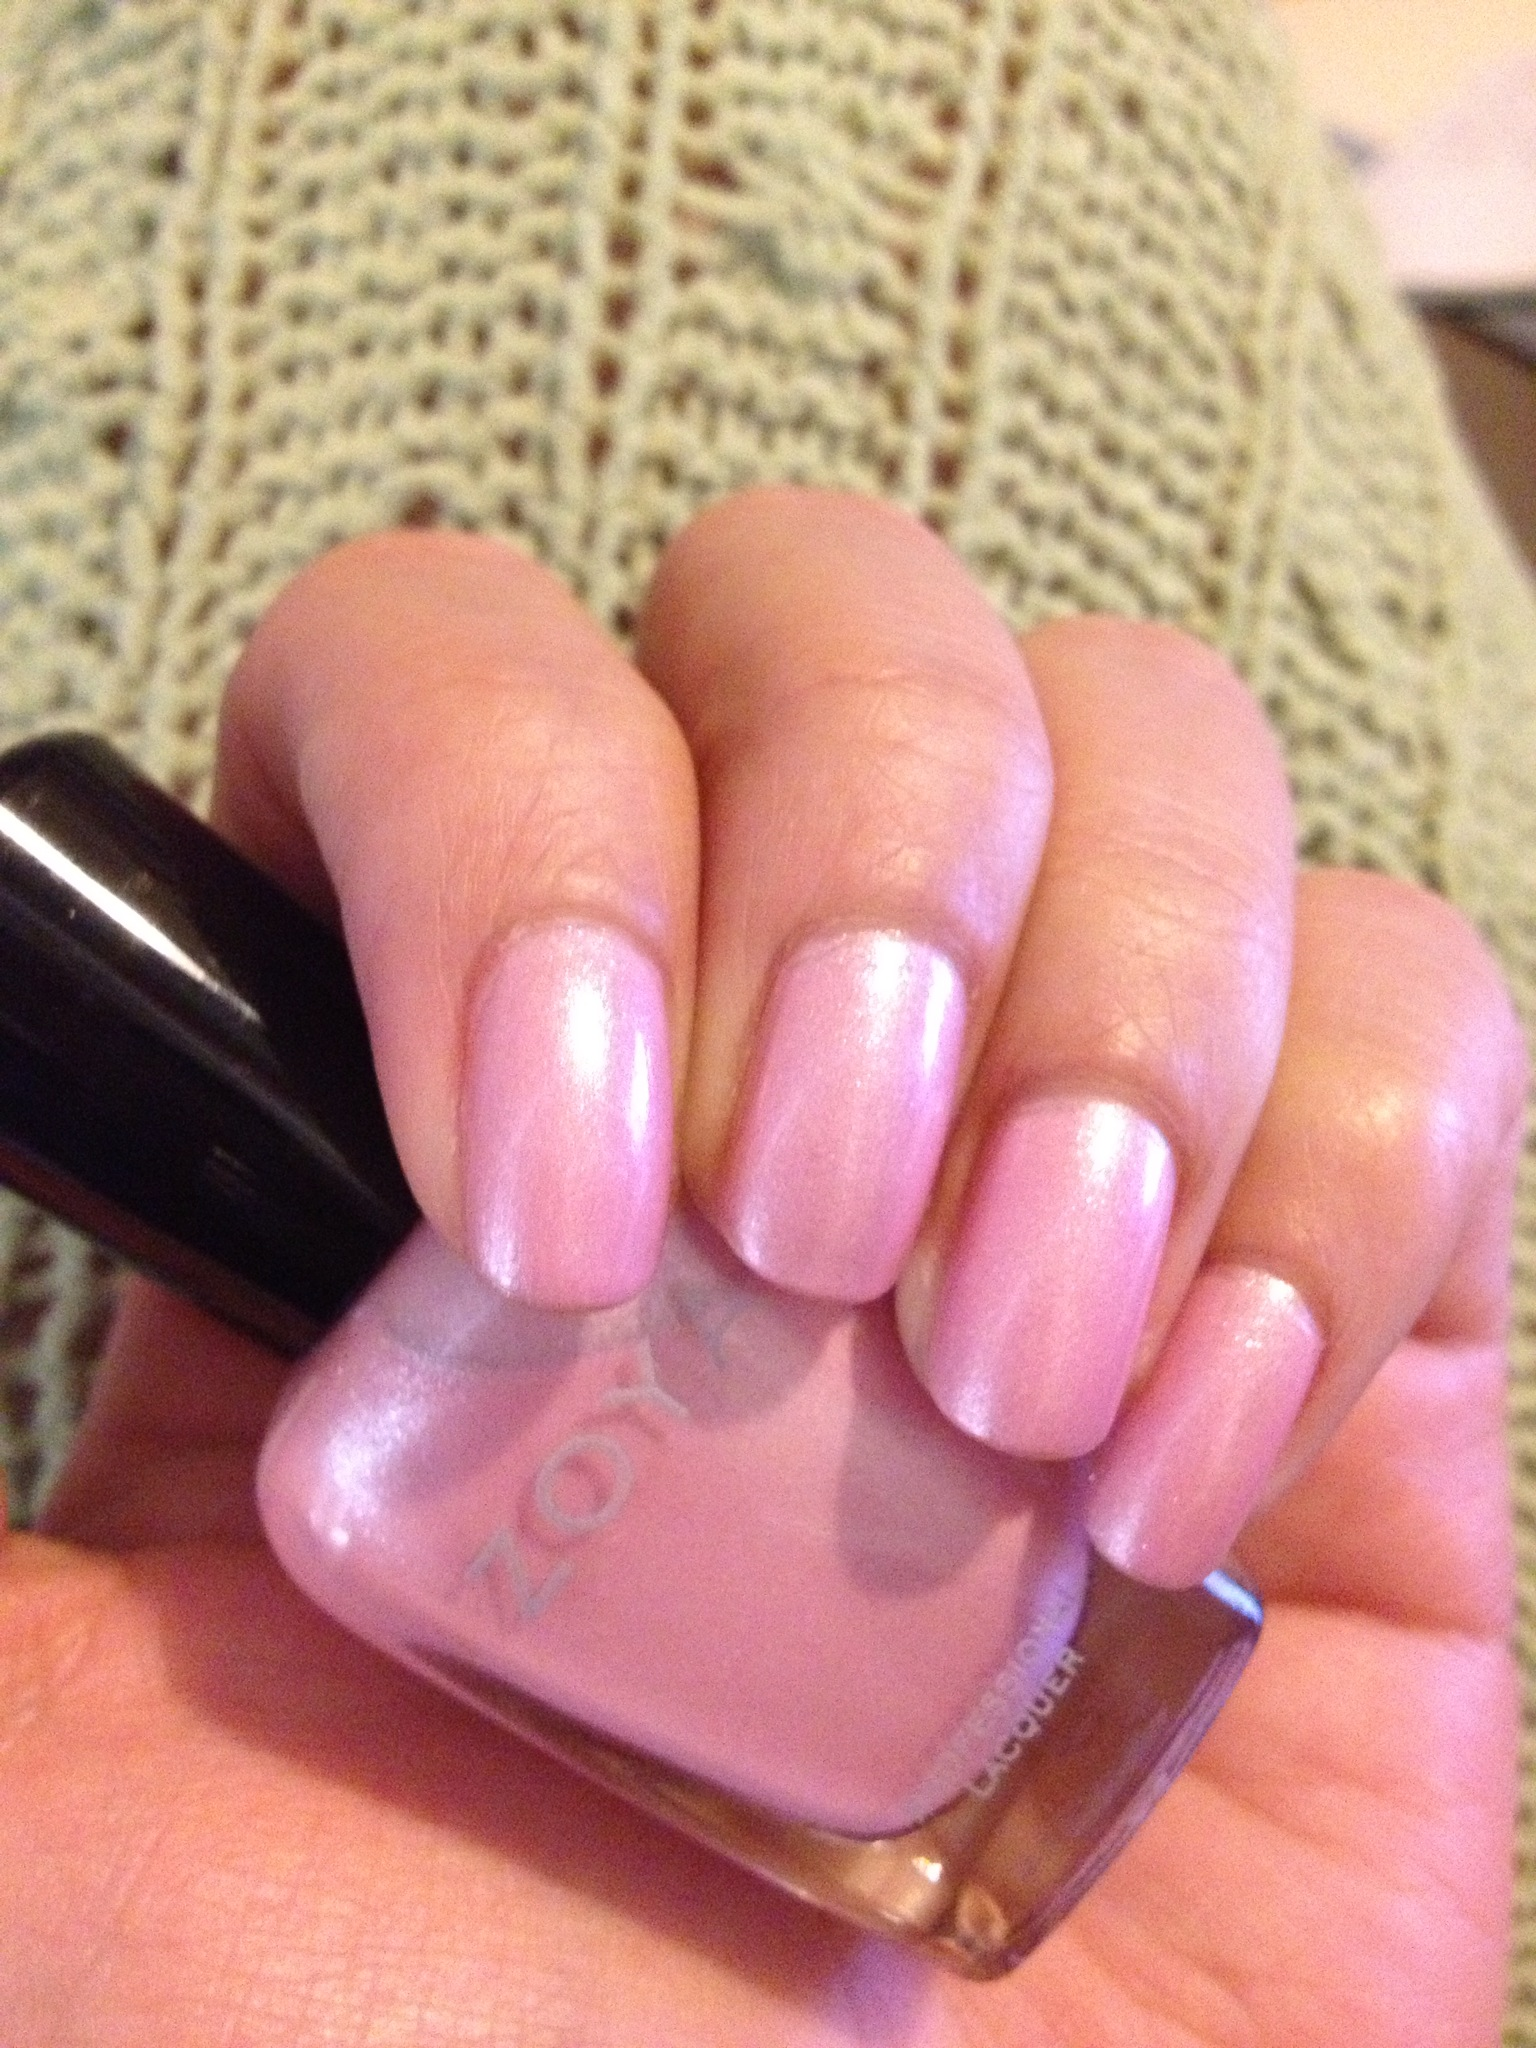 Best Natural Light Pink Nail Polish   Hession Hairdressing